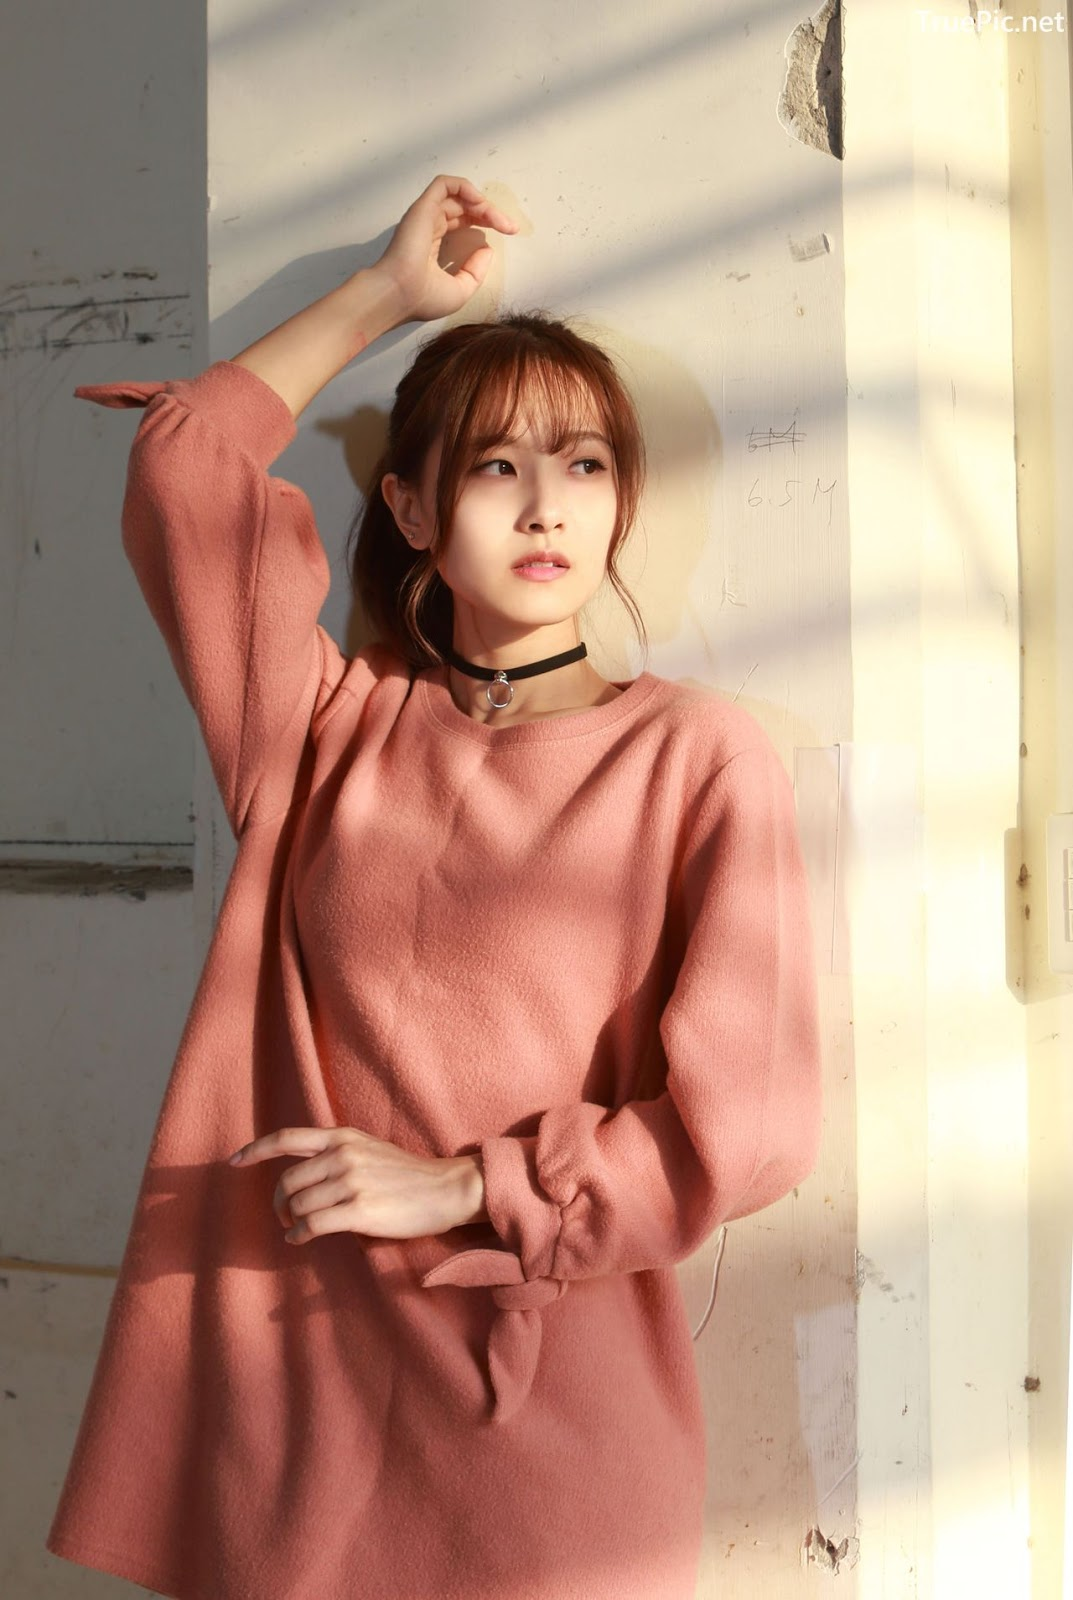 Image-Taiwanese-Model-郭思敏-Pure-And-Gorgeous-Girl-In-Pink-Sweater-Dress-TruePic.net- Picture-4